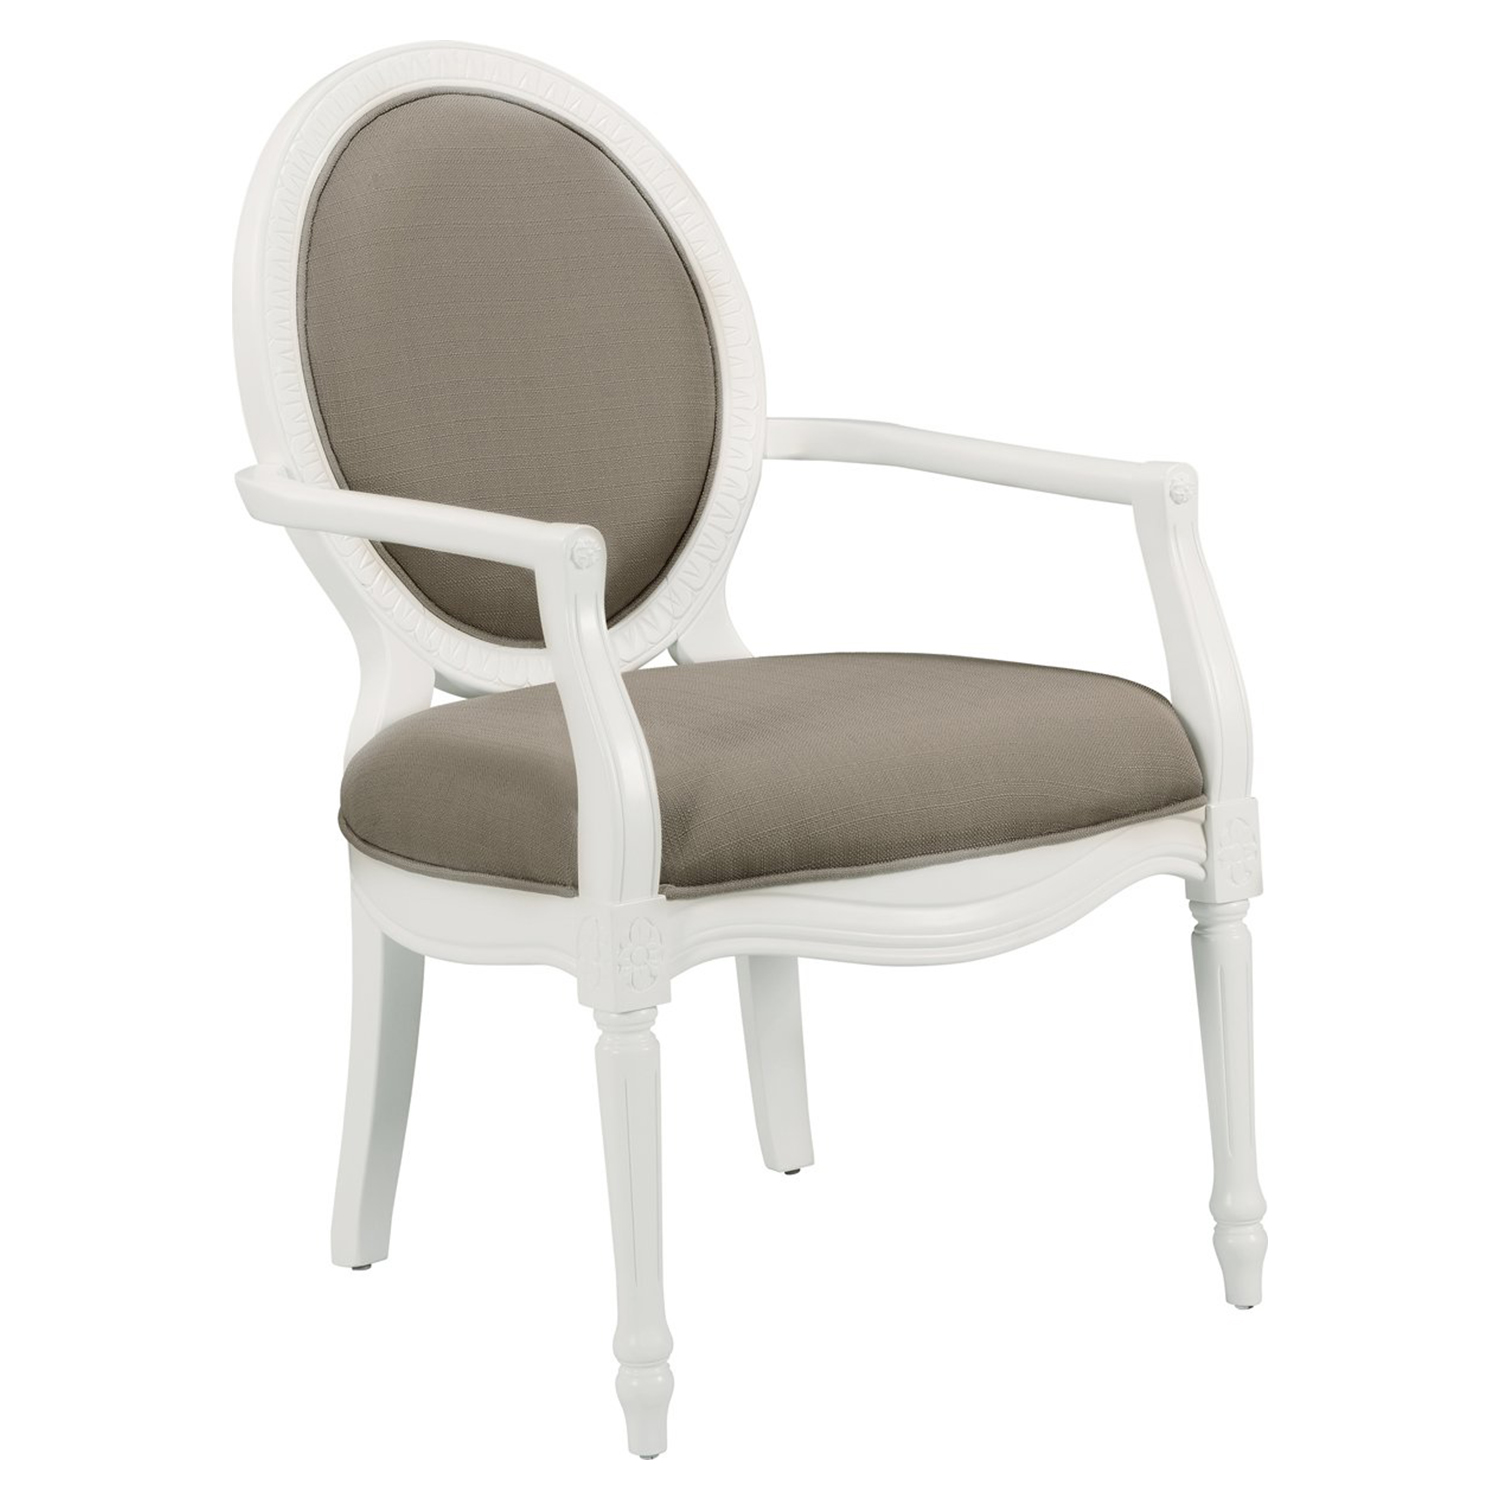 Madison Accent Chair - Taupe, White